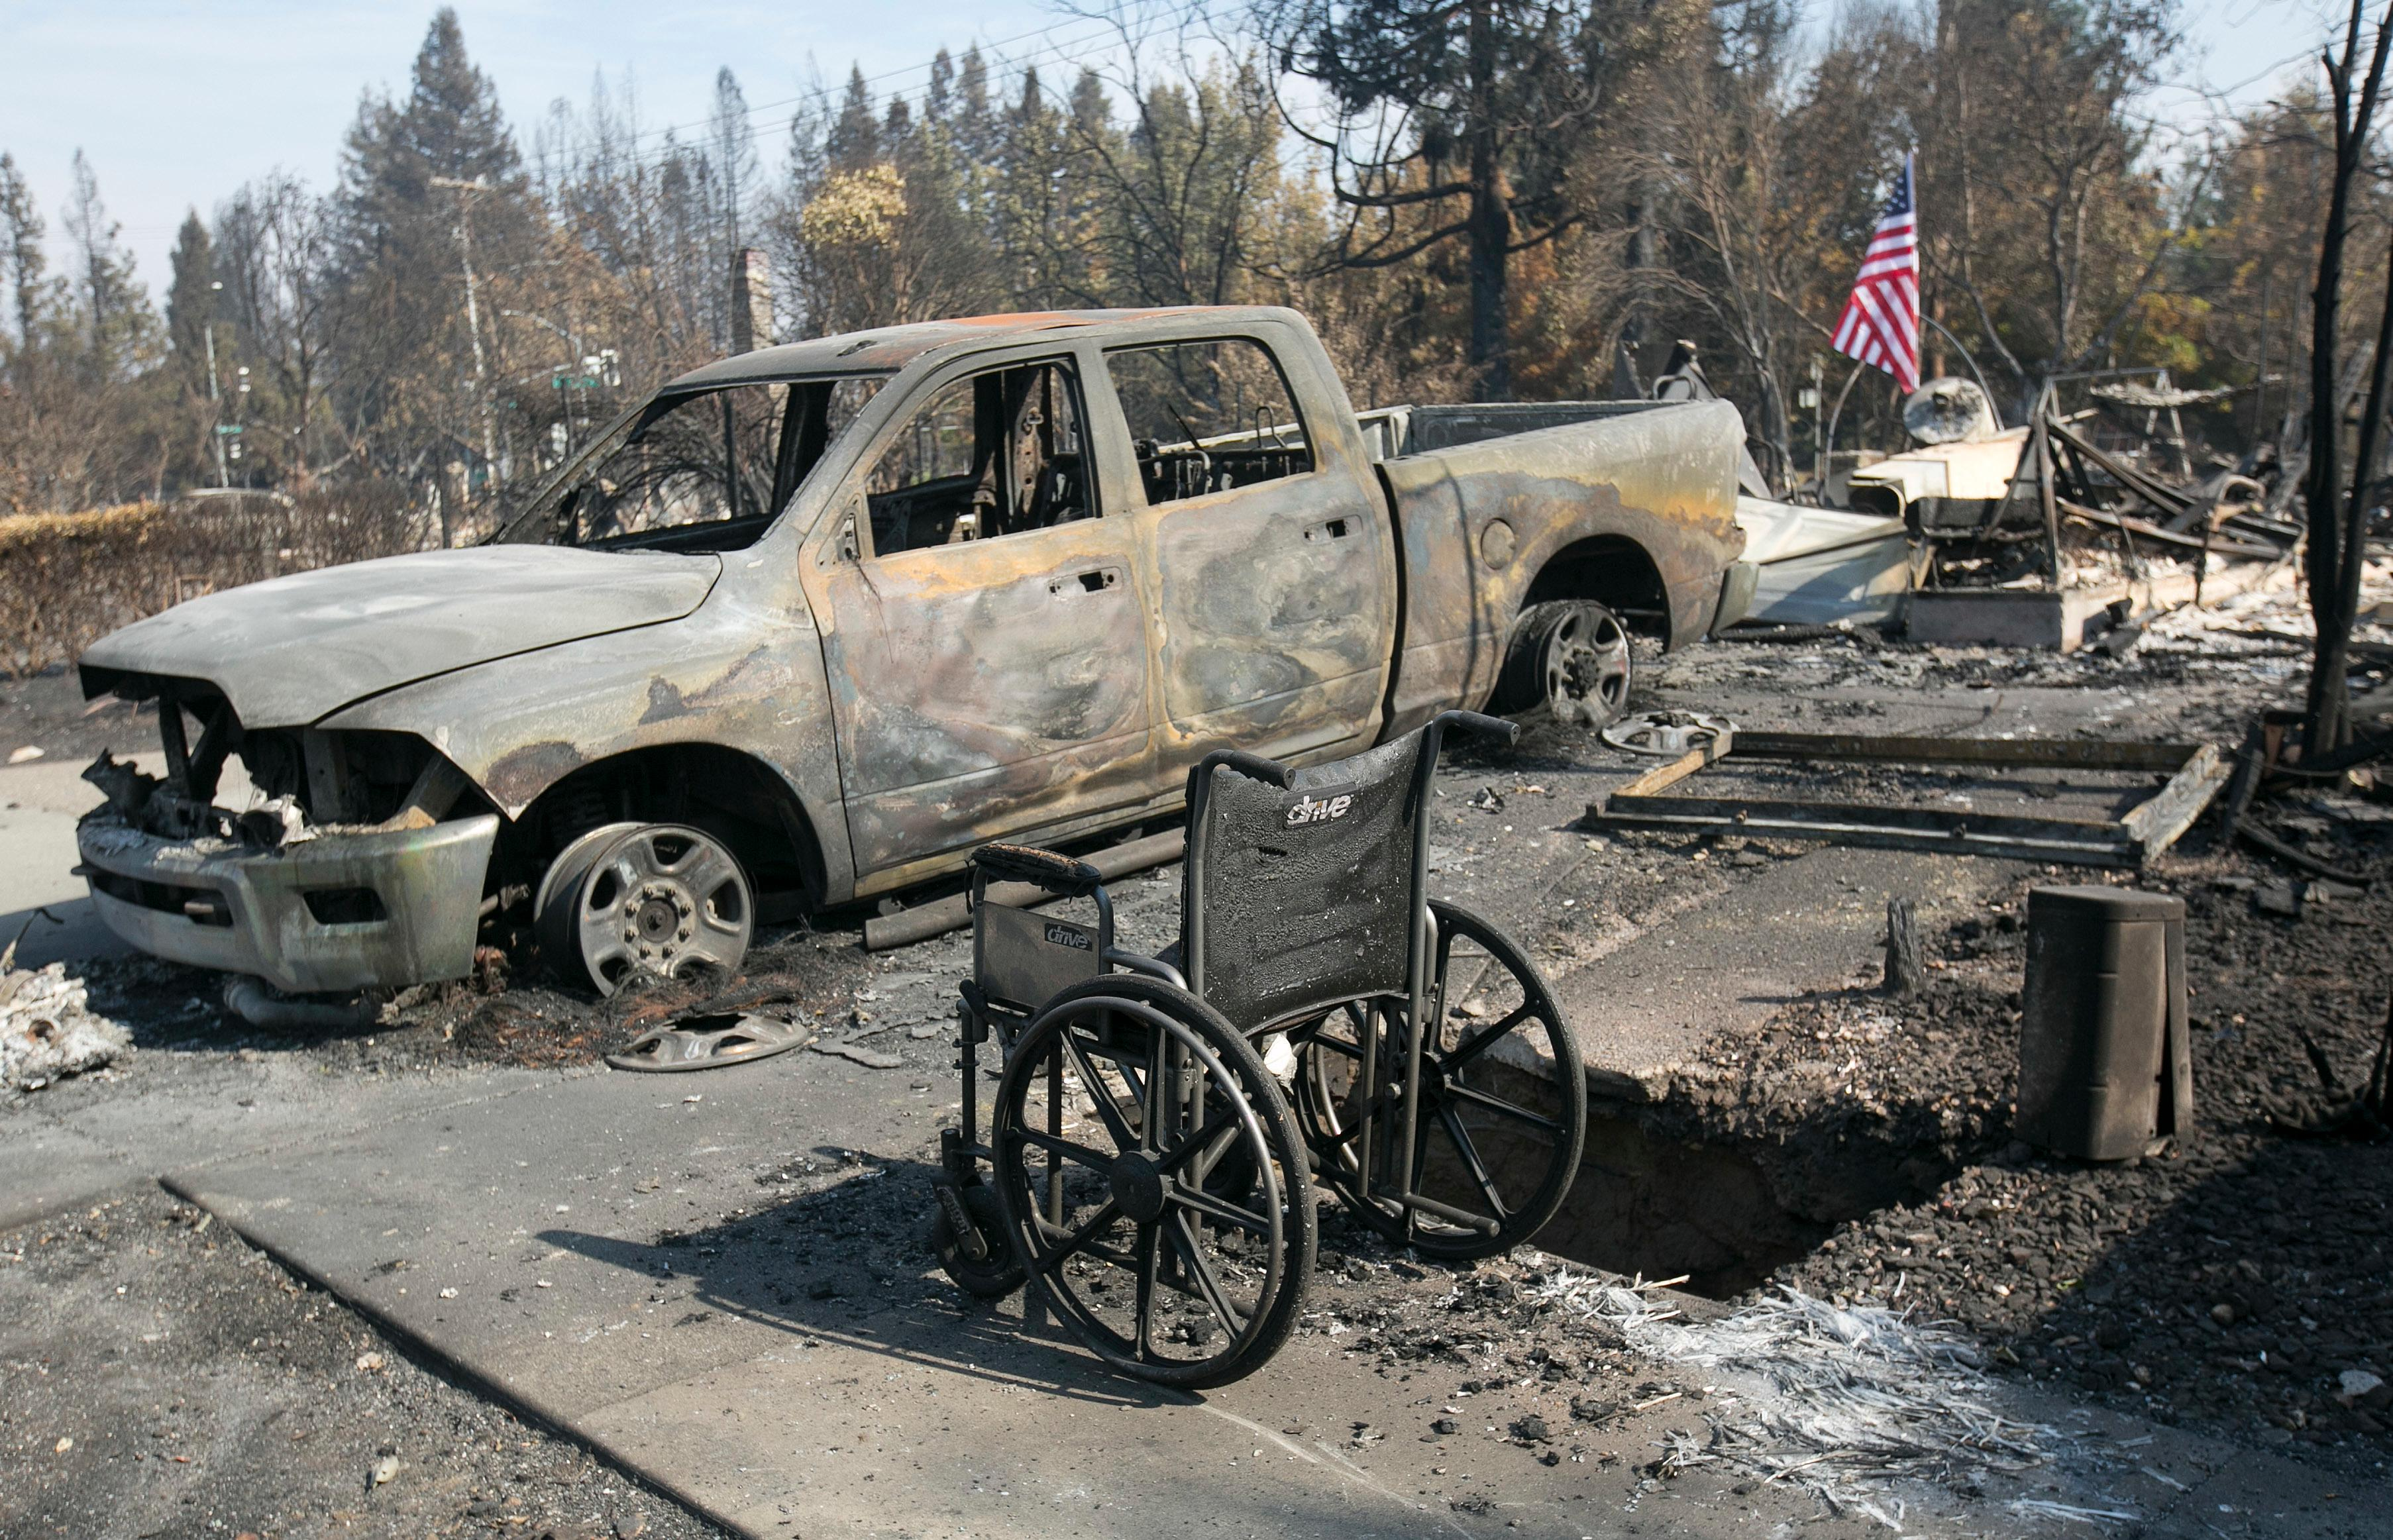 A scorched truck and wheelchair sit outside the charred remains of a house in the Coffey Park area of Santa Rosa, Calif., Monday, Oct. 16, 2017. (AP Photo/Rich Pedroncelli)